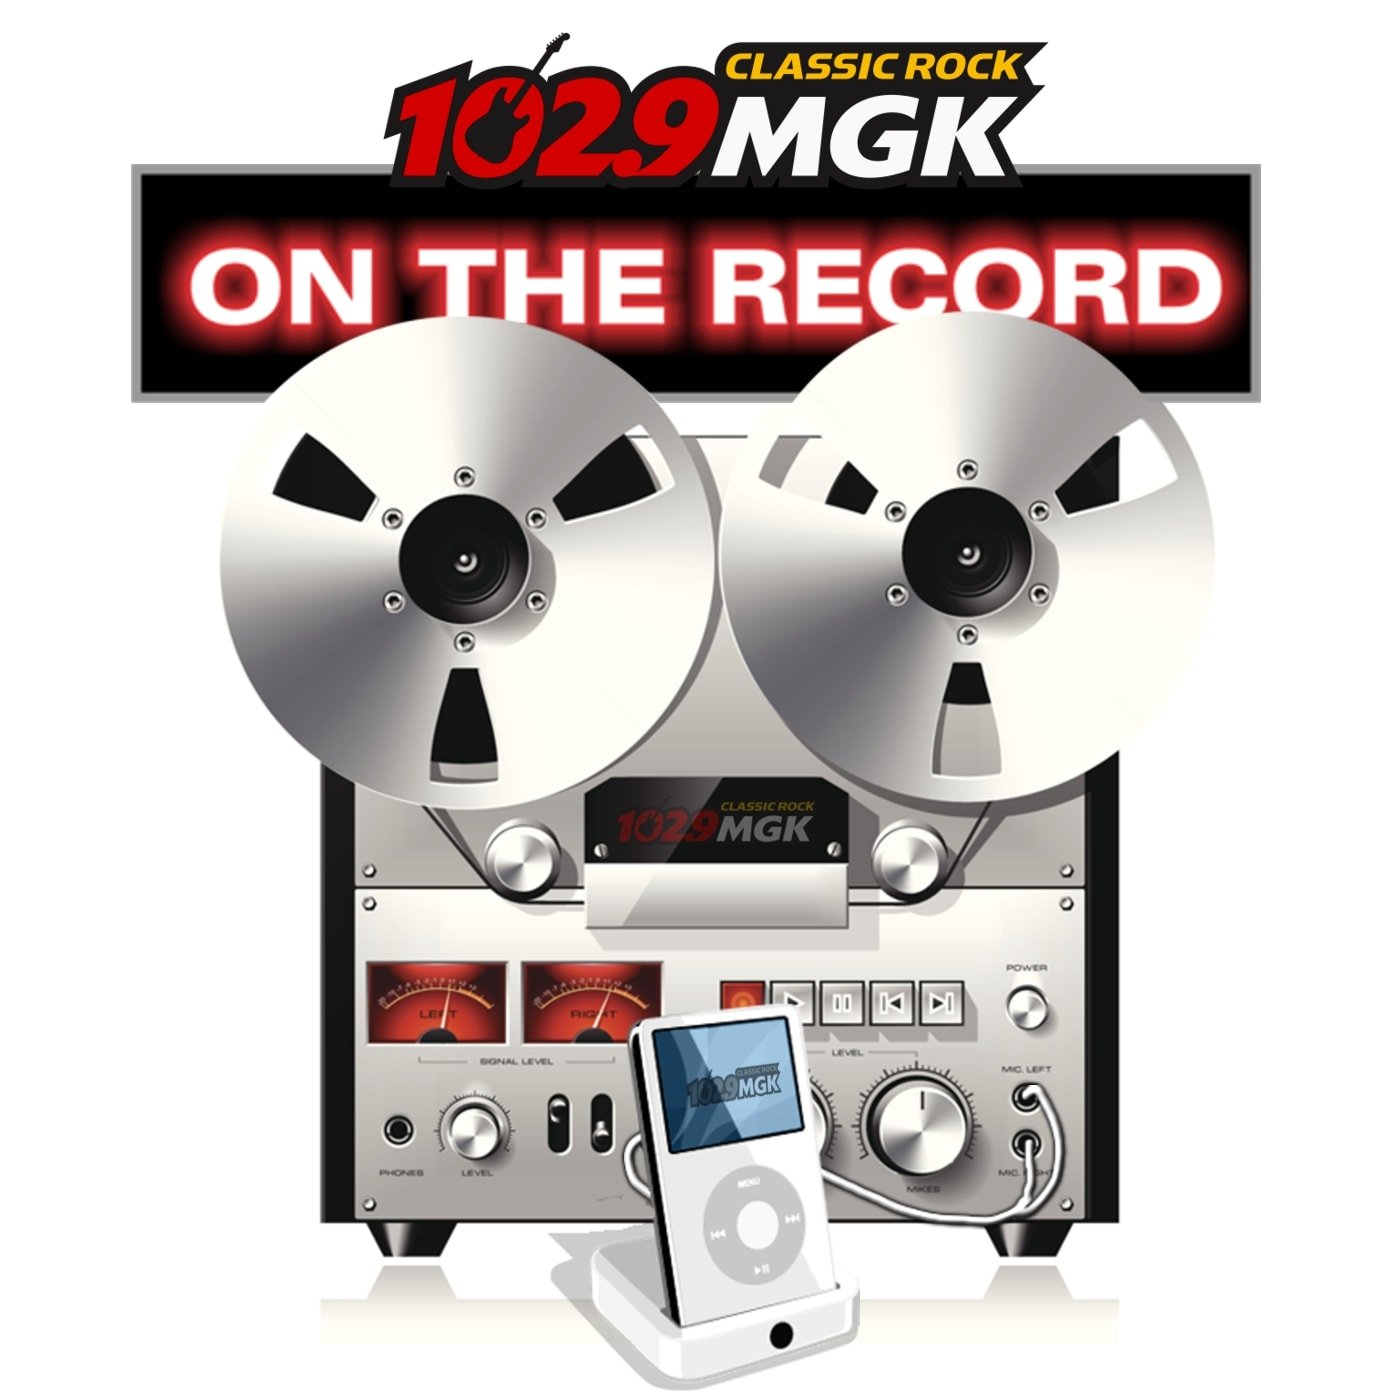 102.9 WMGK's On The Record